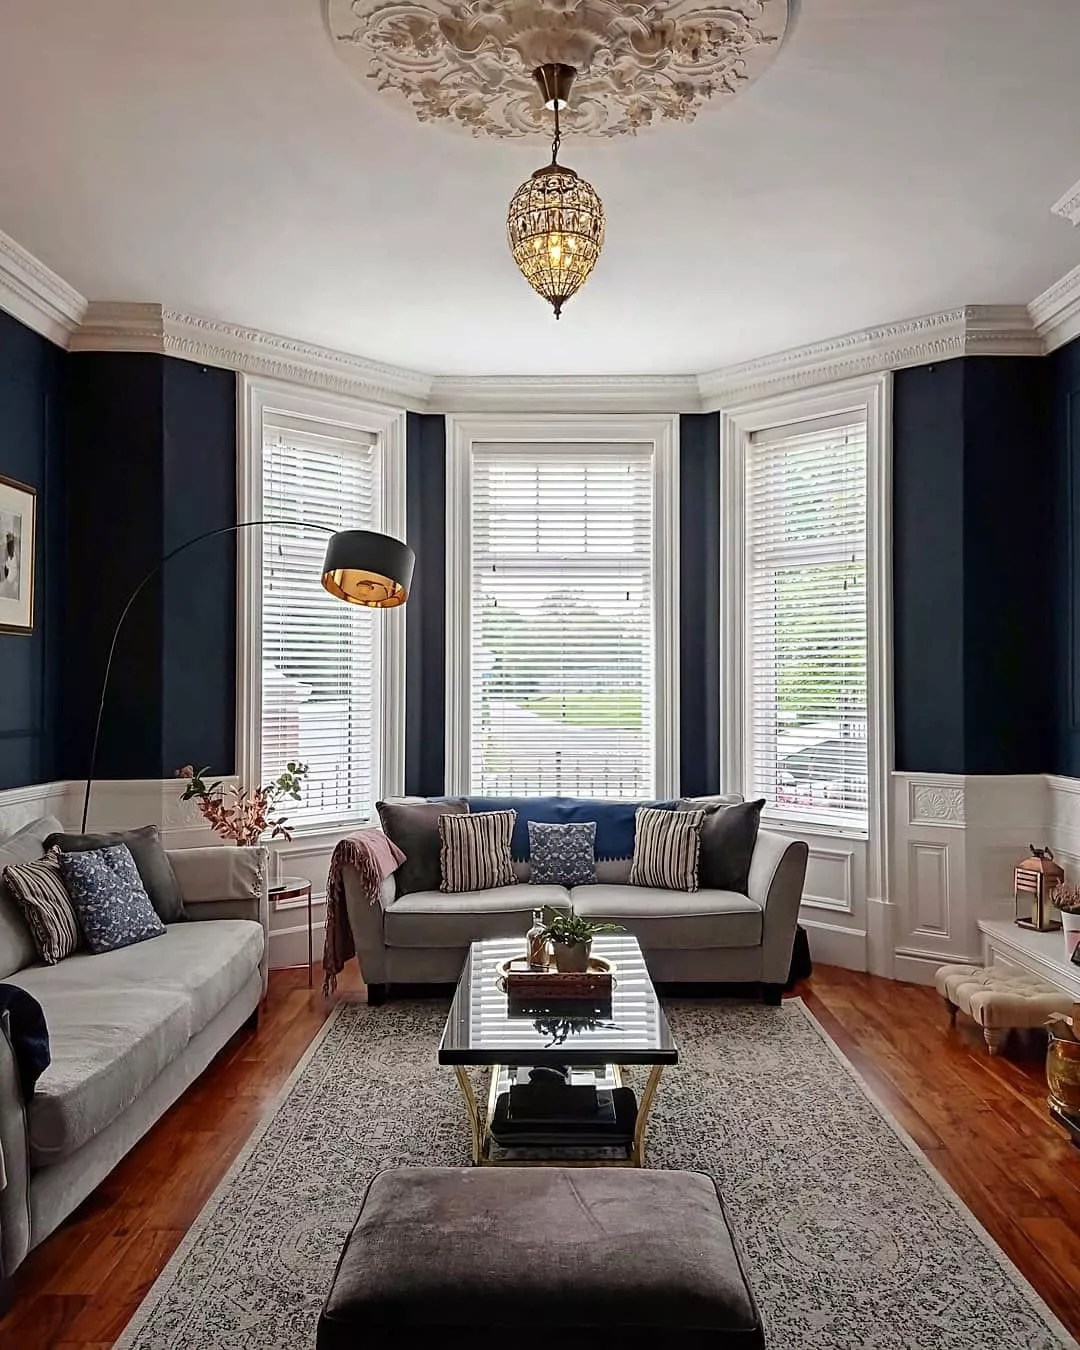 Blue living room with wooden floors neutral colored sofas and white bay windows with slatted white binds